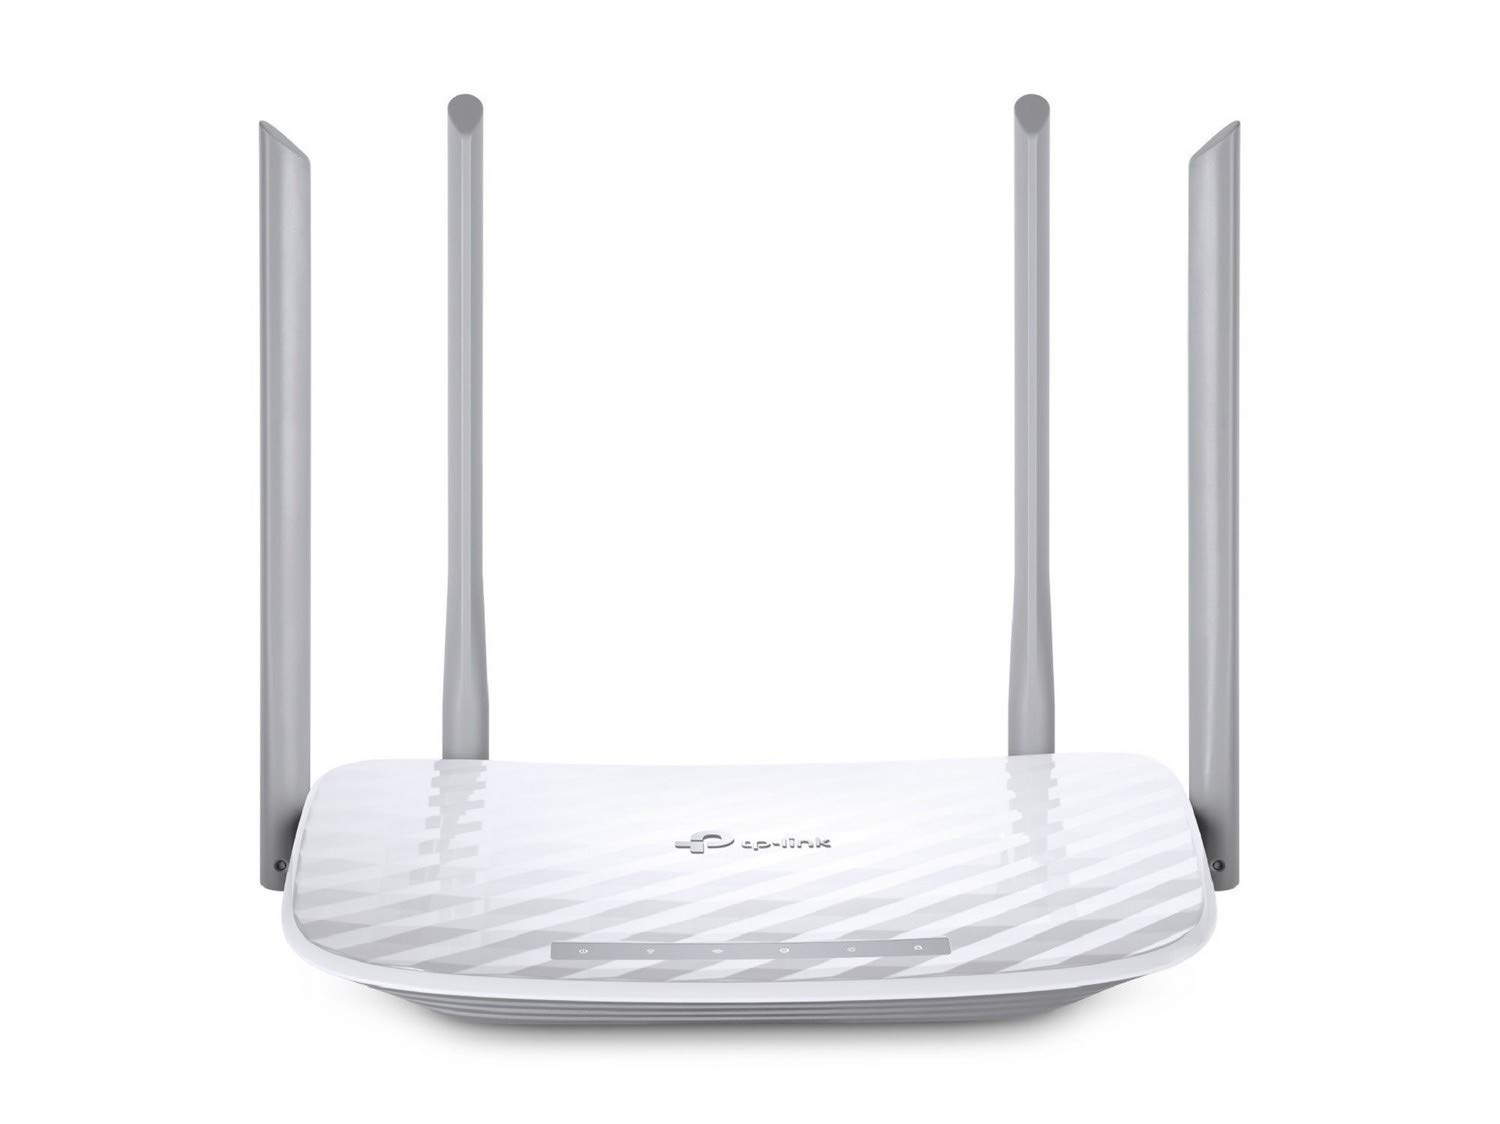 tp-link-archer-c50-ac1200-dual-band-wireless-cable-router-wi-fi-speed-up-to-867-mbps-5-ghz-300-mbps-24-ghz-supports-parental-control-guest-wi-fi-vpn